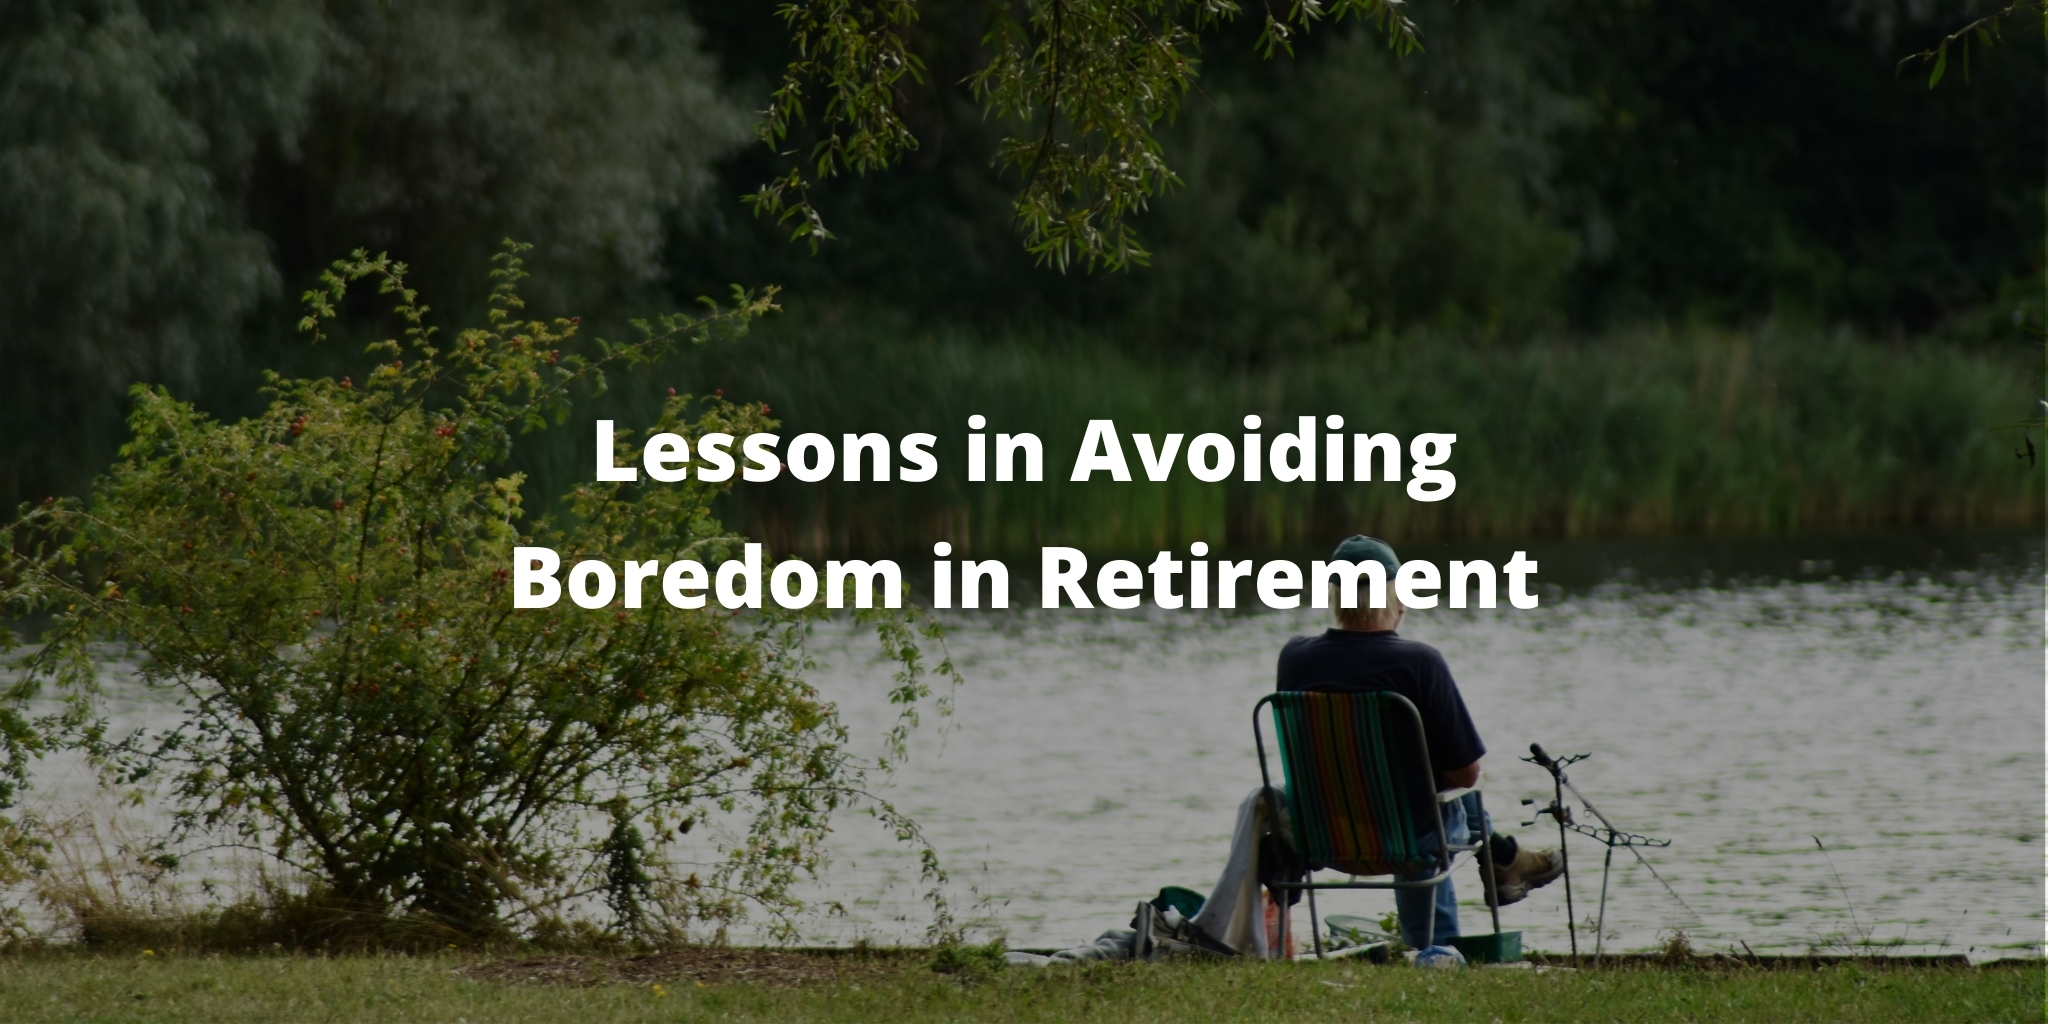 Lessons in Avoiding Boredom in Retirement